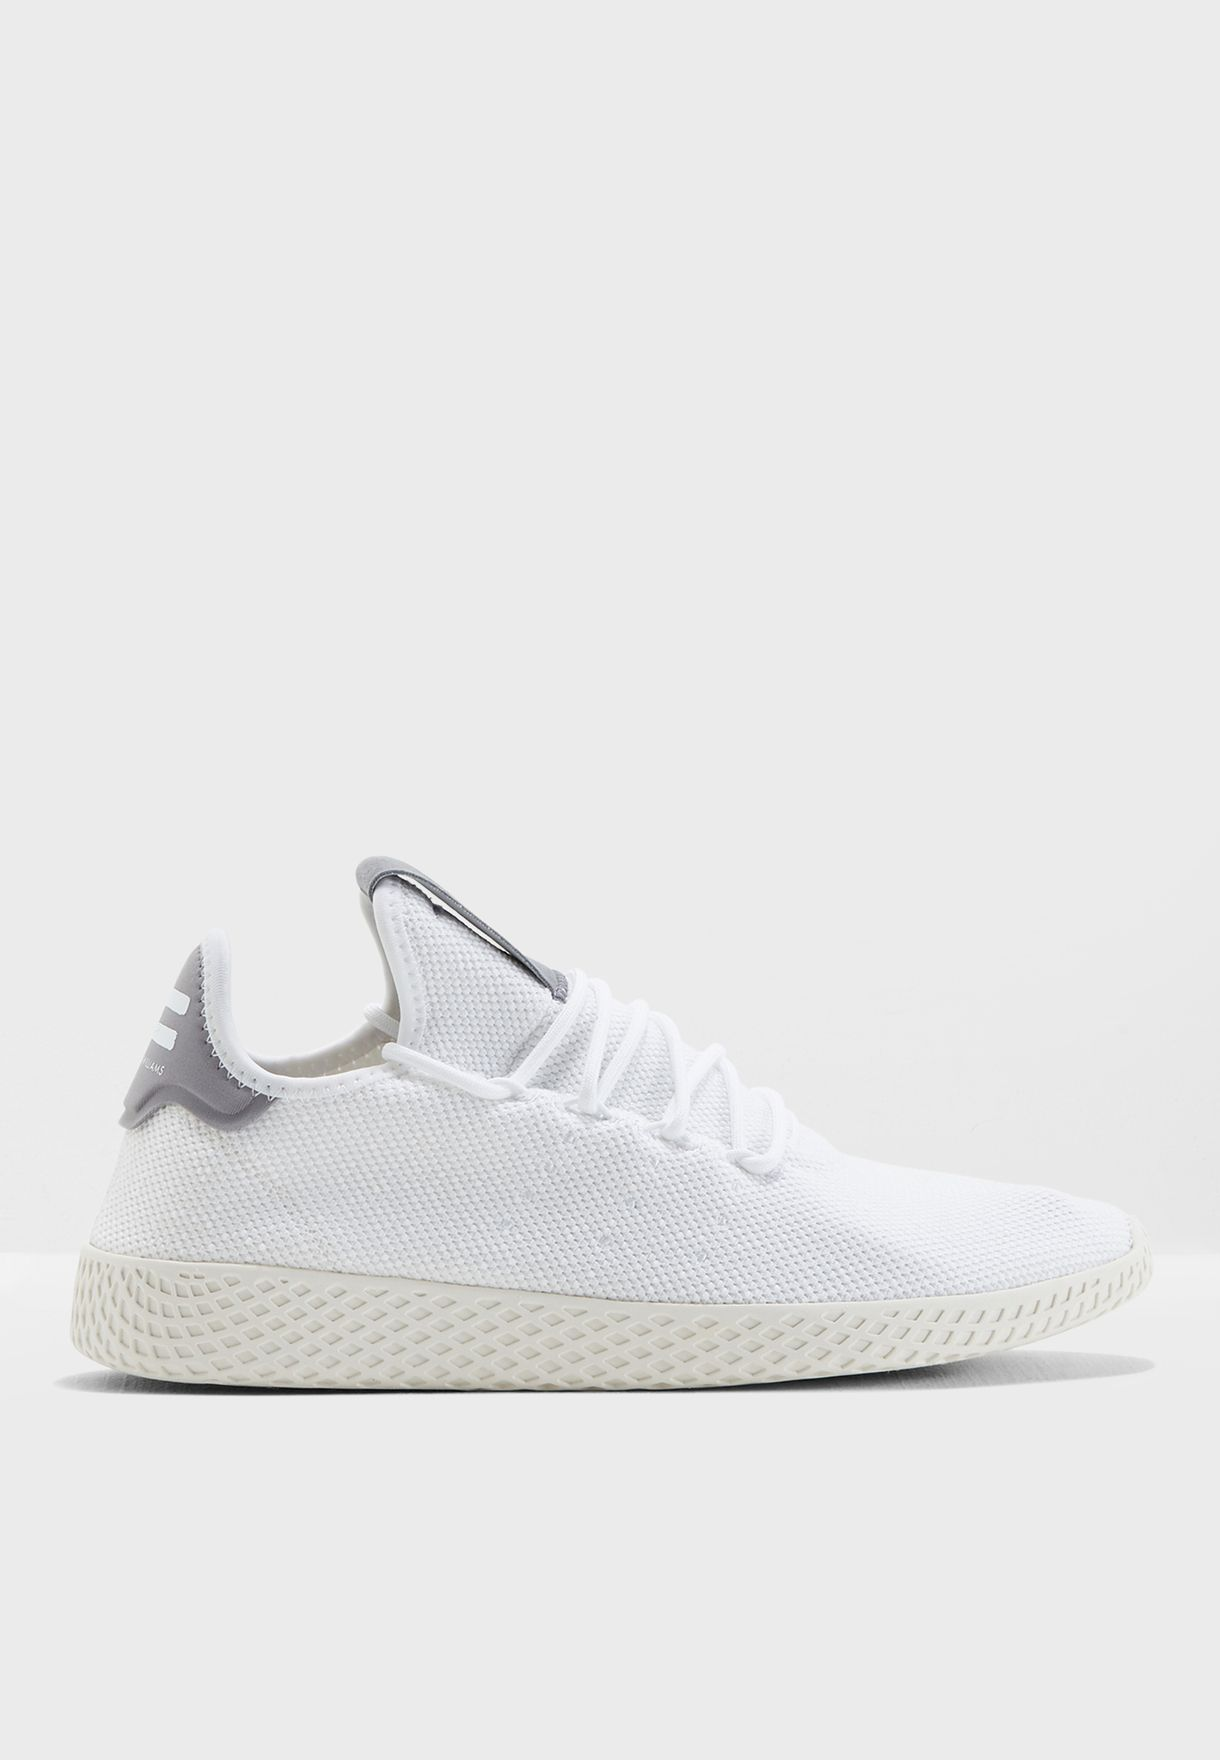 ad7d3d392b6ae Shop adidas Originals white Pharrell Williams Tennis Hu B41793 for ...